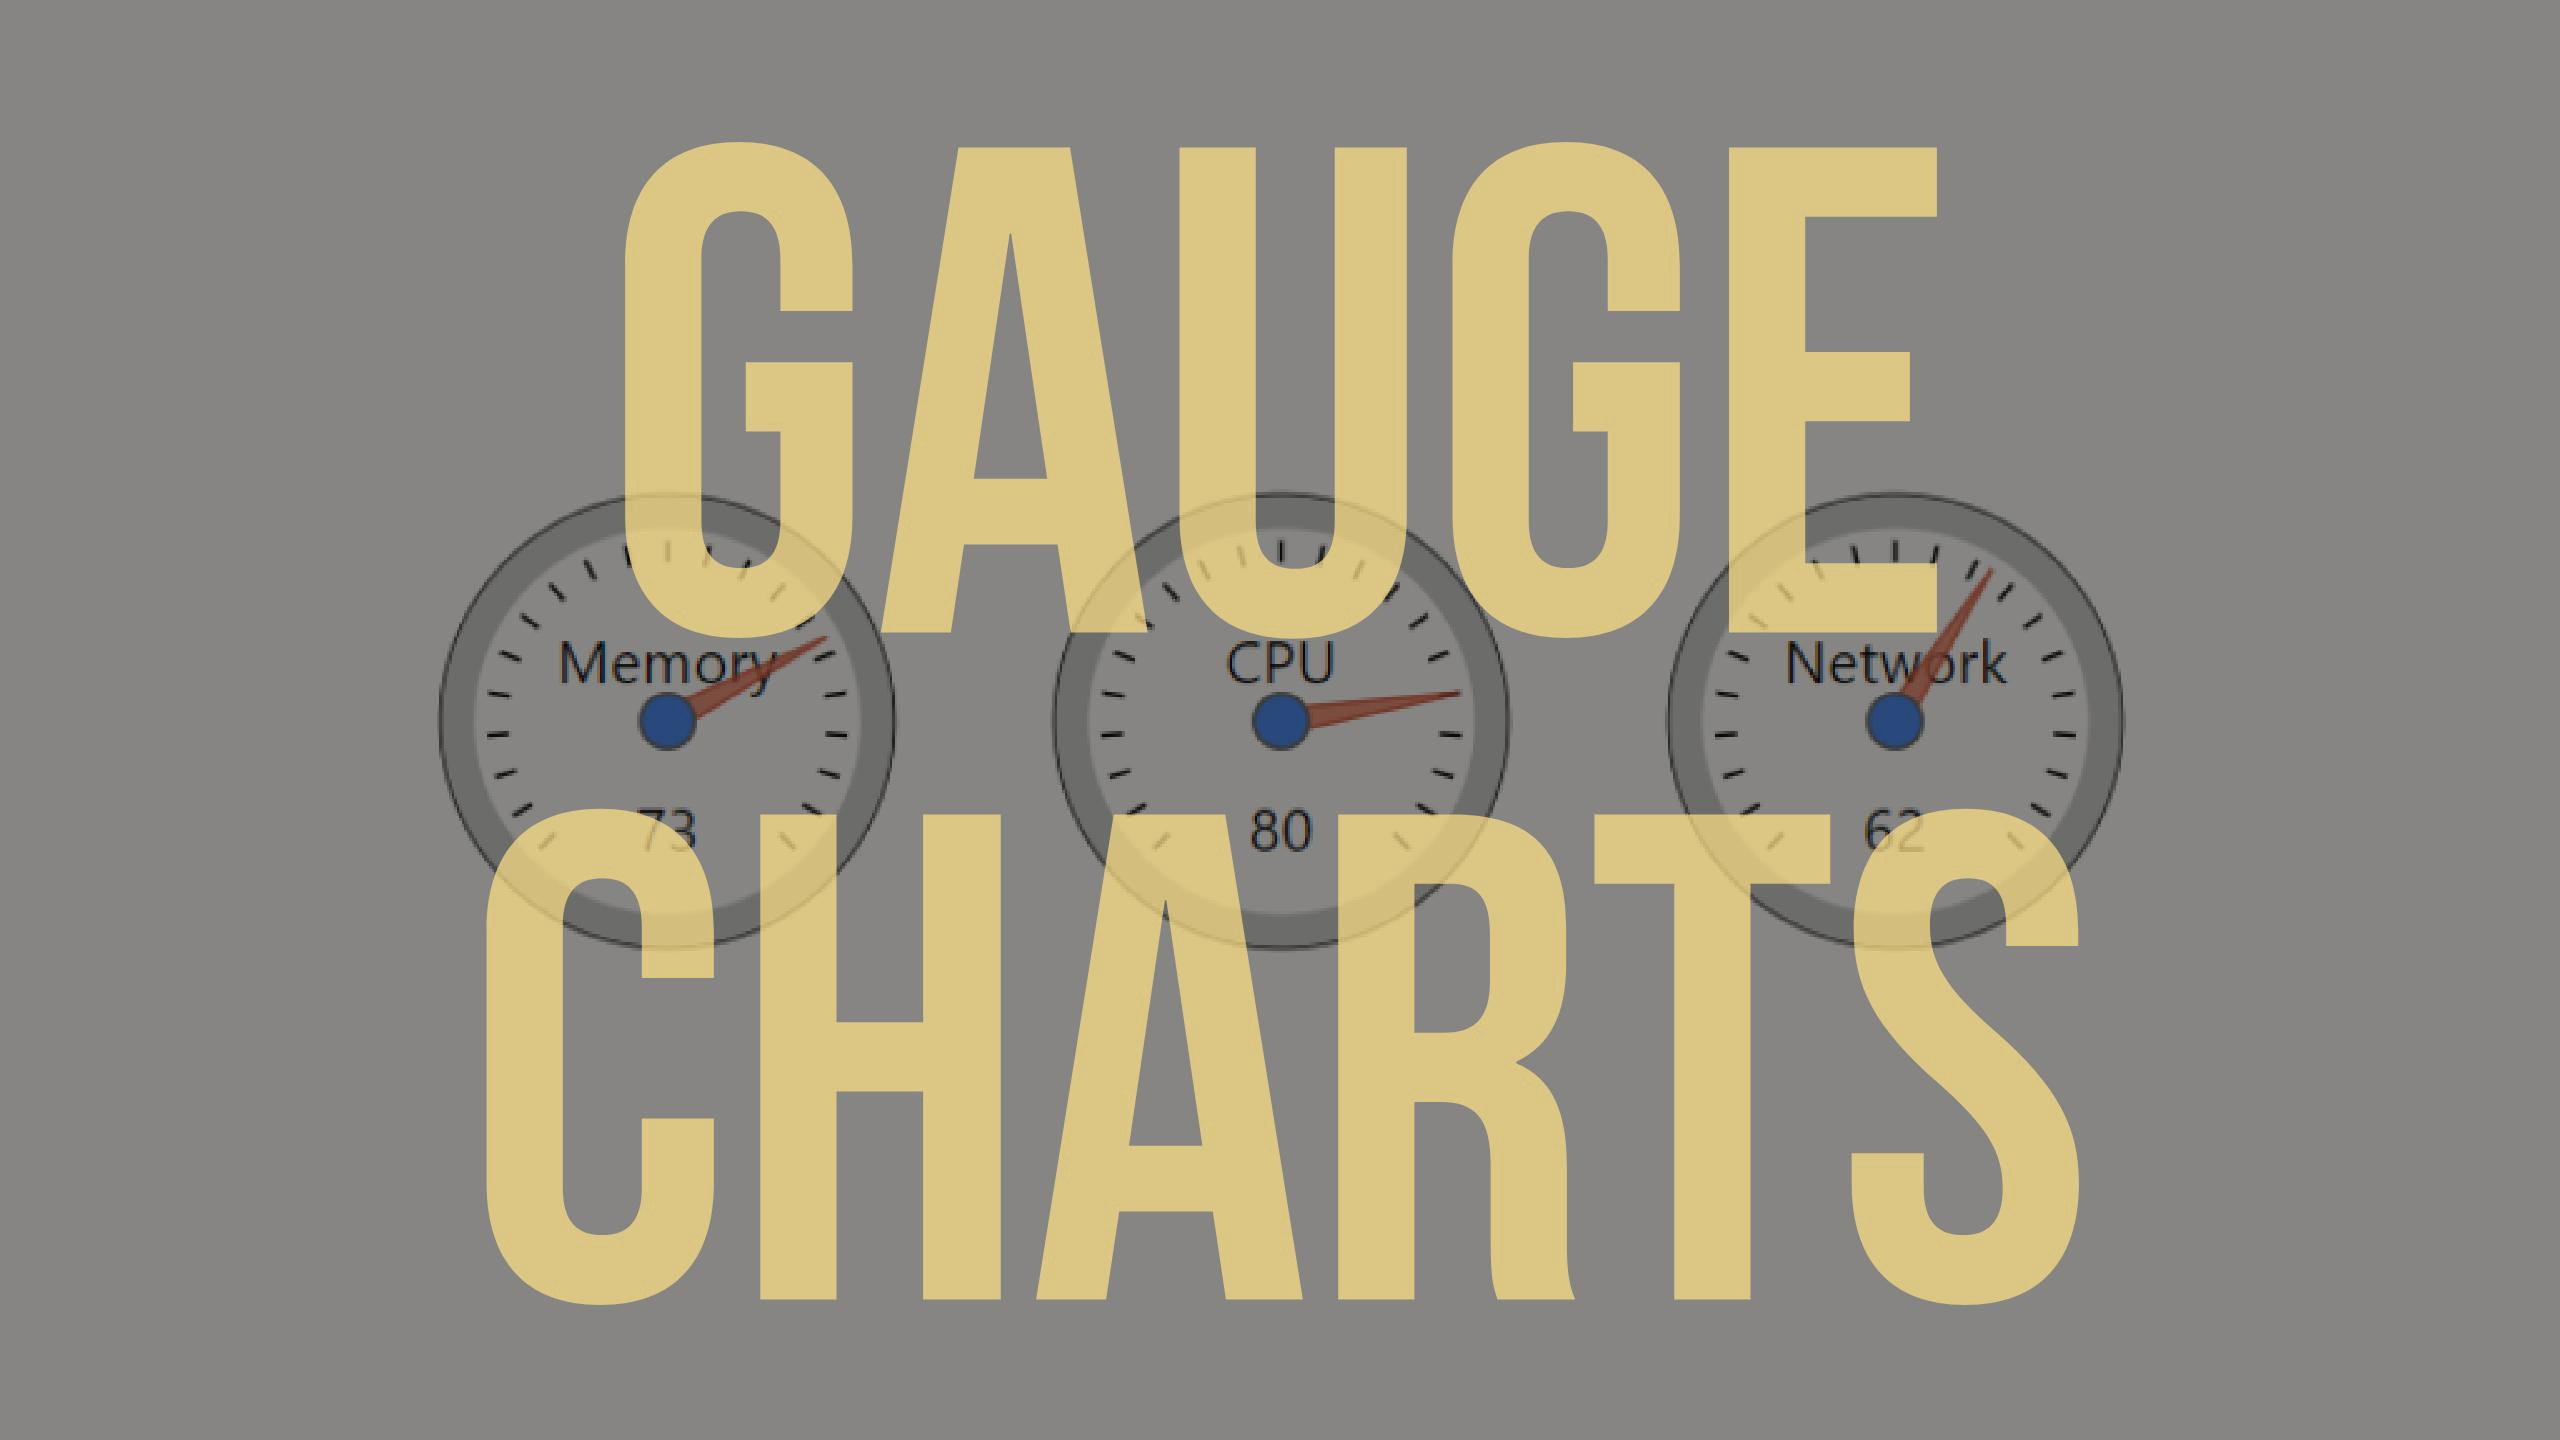 Google-style gauge charts using D3 - Travis Horn